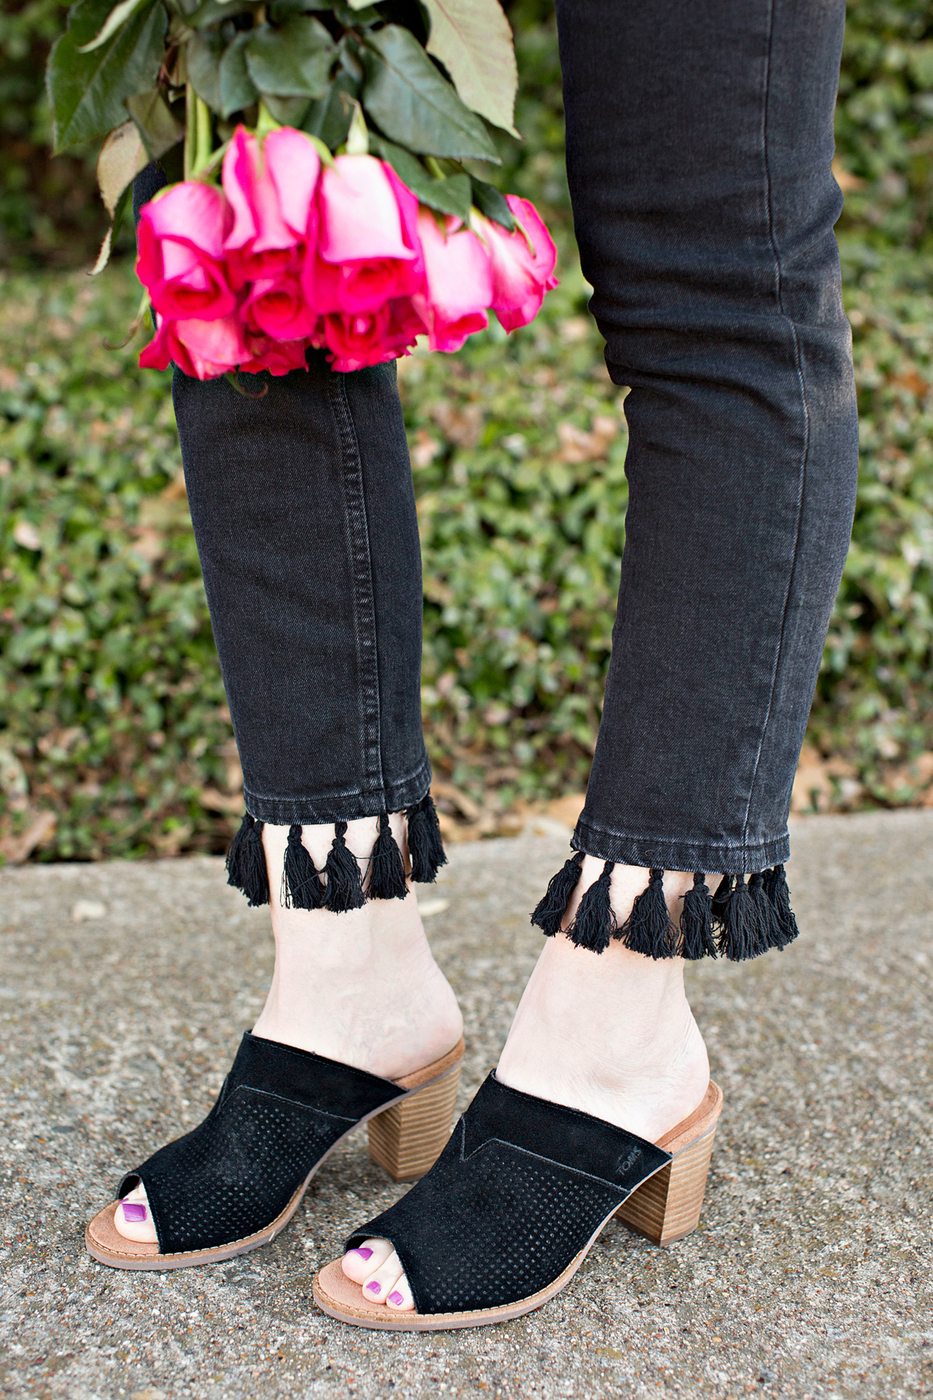 black and white, tom's mules, open-toe mules, black tom's mules, black open toe mules